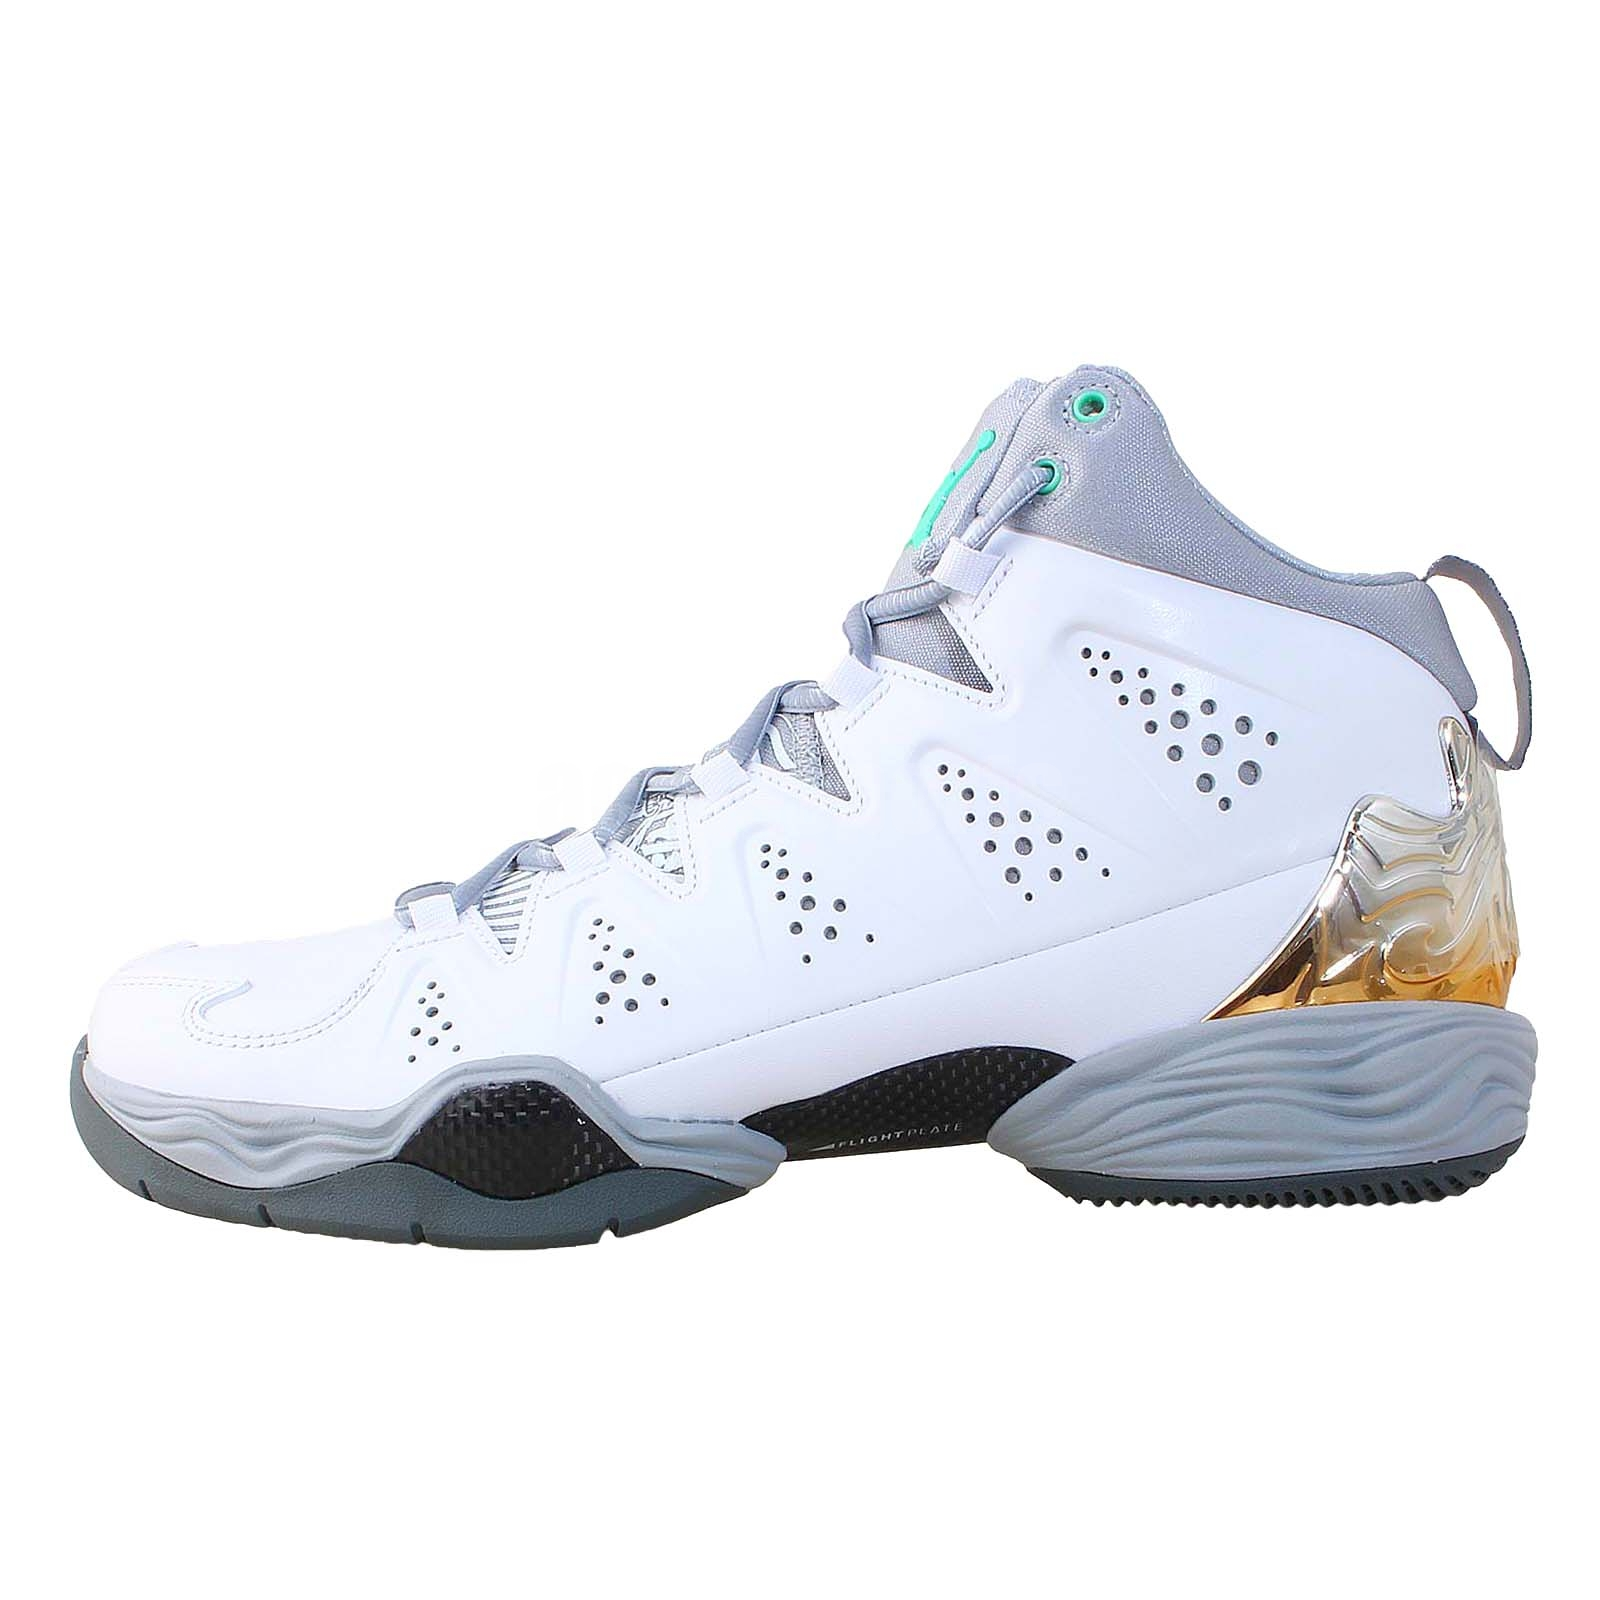 nike melo m10 white green glow 2014 carmelo anthony